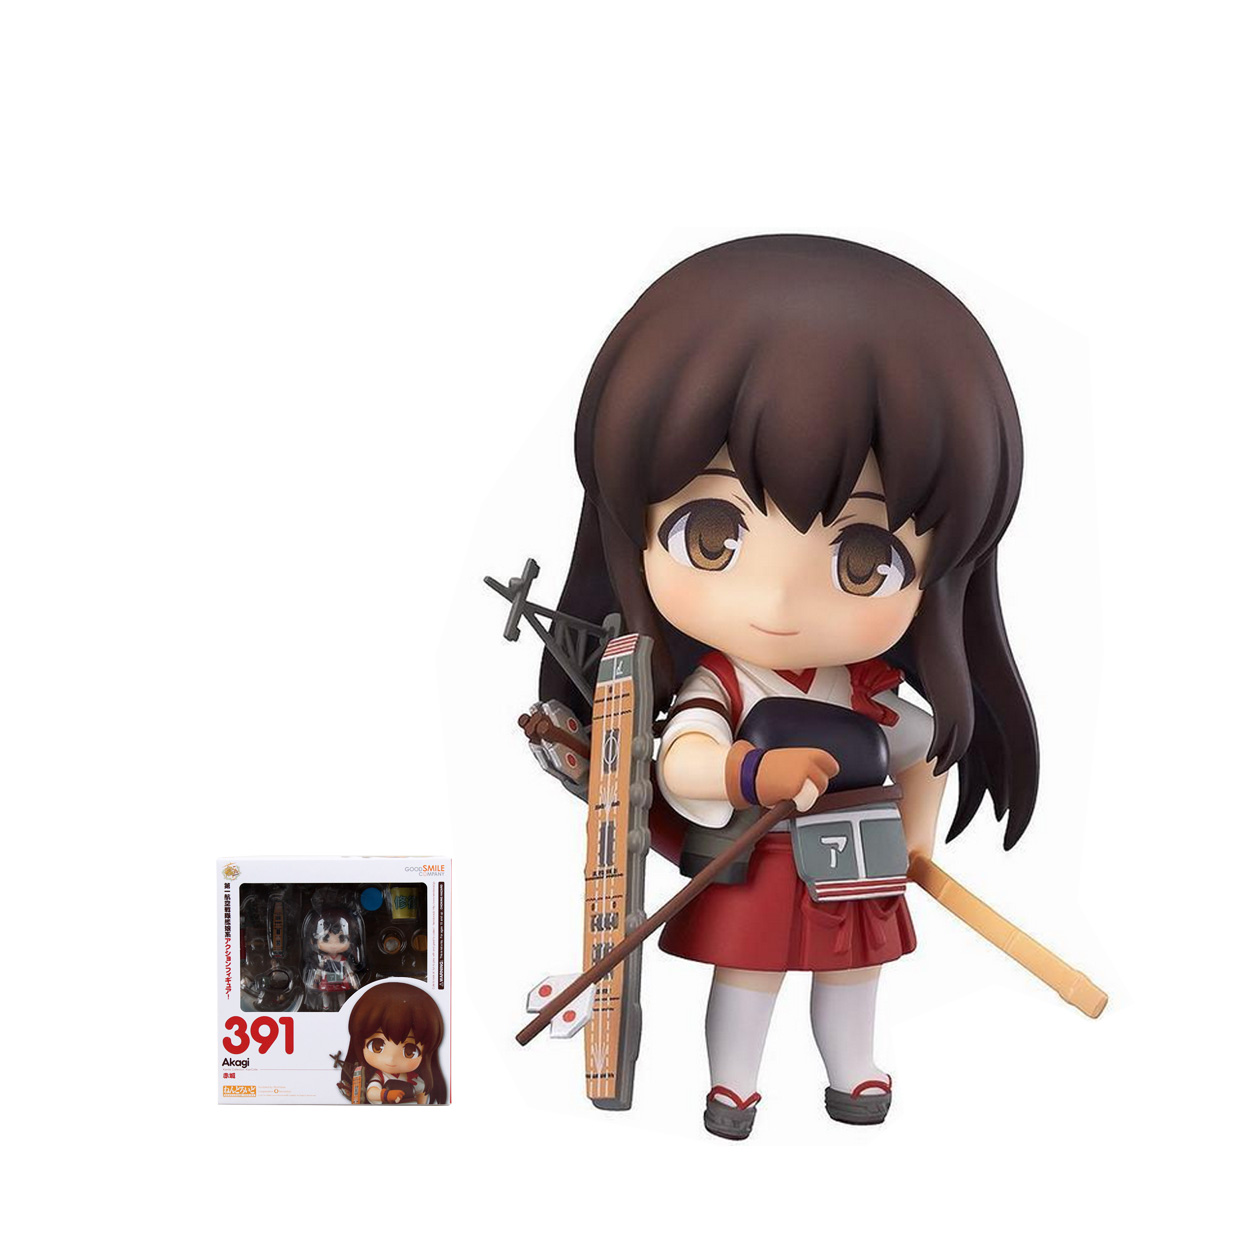 GSC Nendoroid 391# Battleship Collection Akagi Boxed Action Figure Model Collection Toy 10cm 4<br><br>Aliexpress